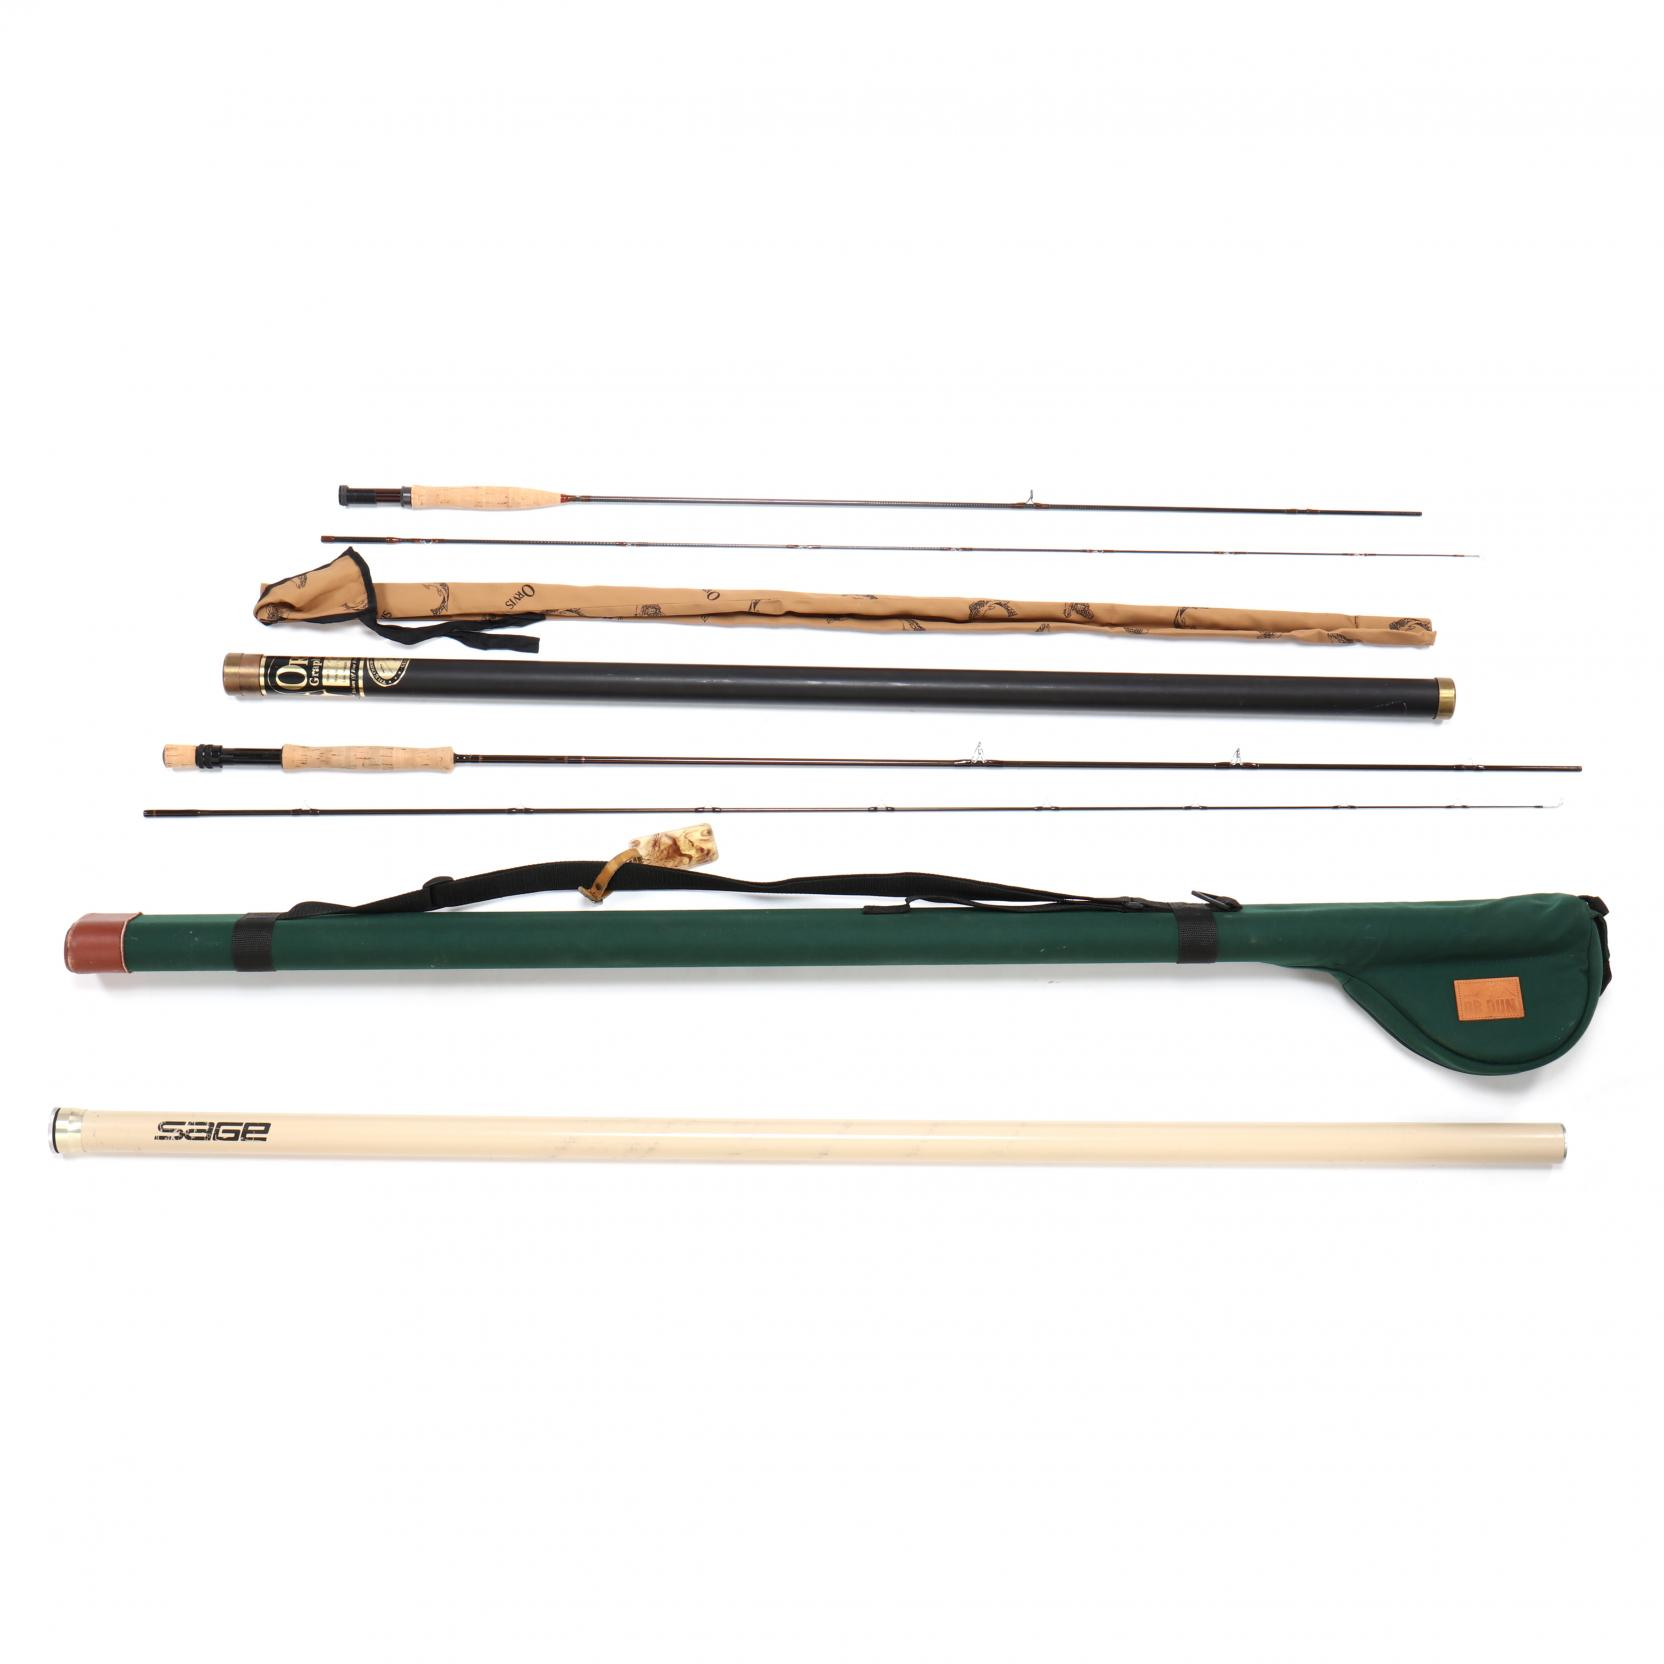 orivs-graphite-fly-rod-and-sage-graphite-fly-rod